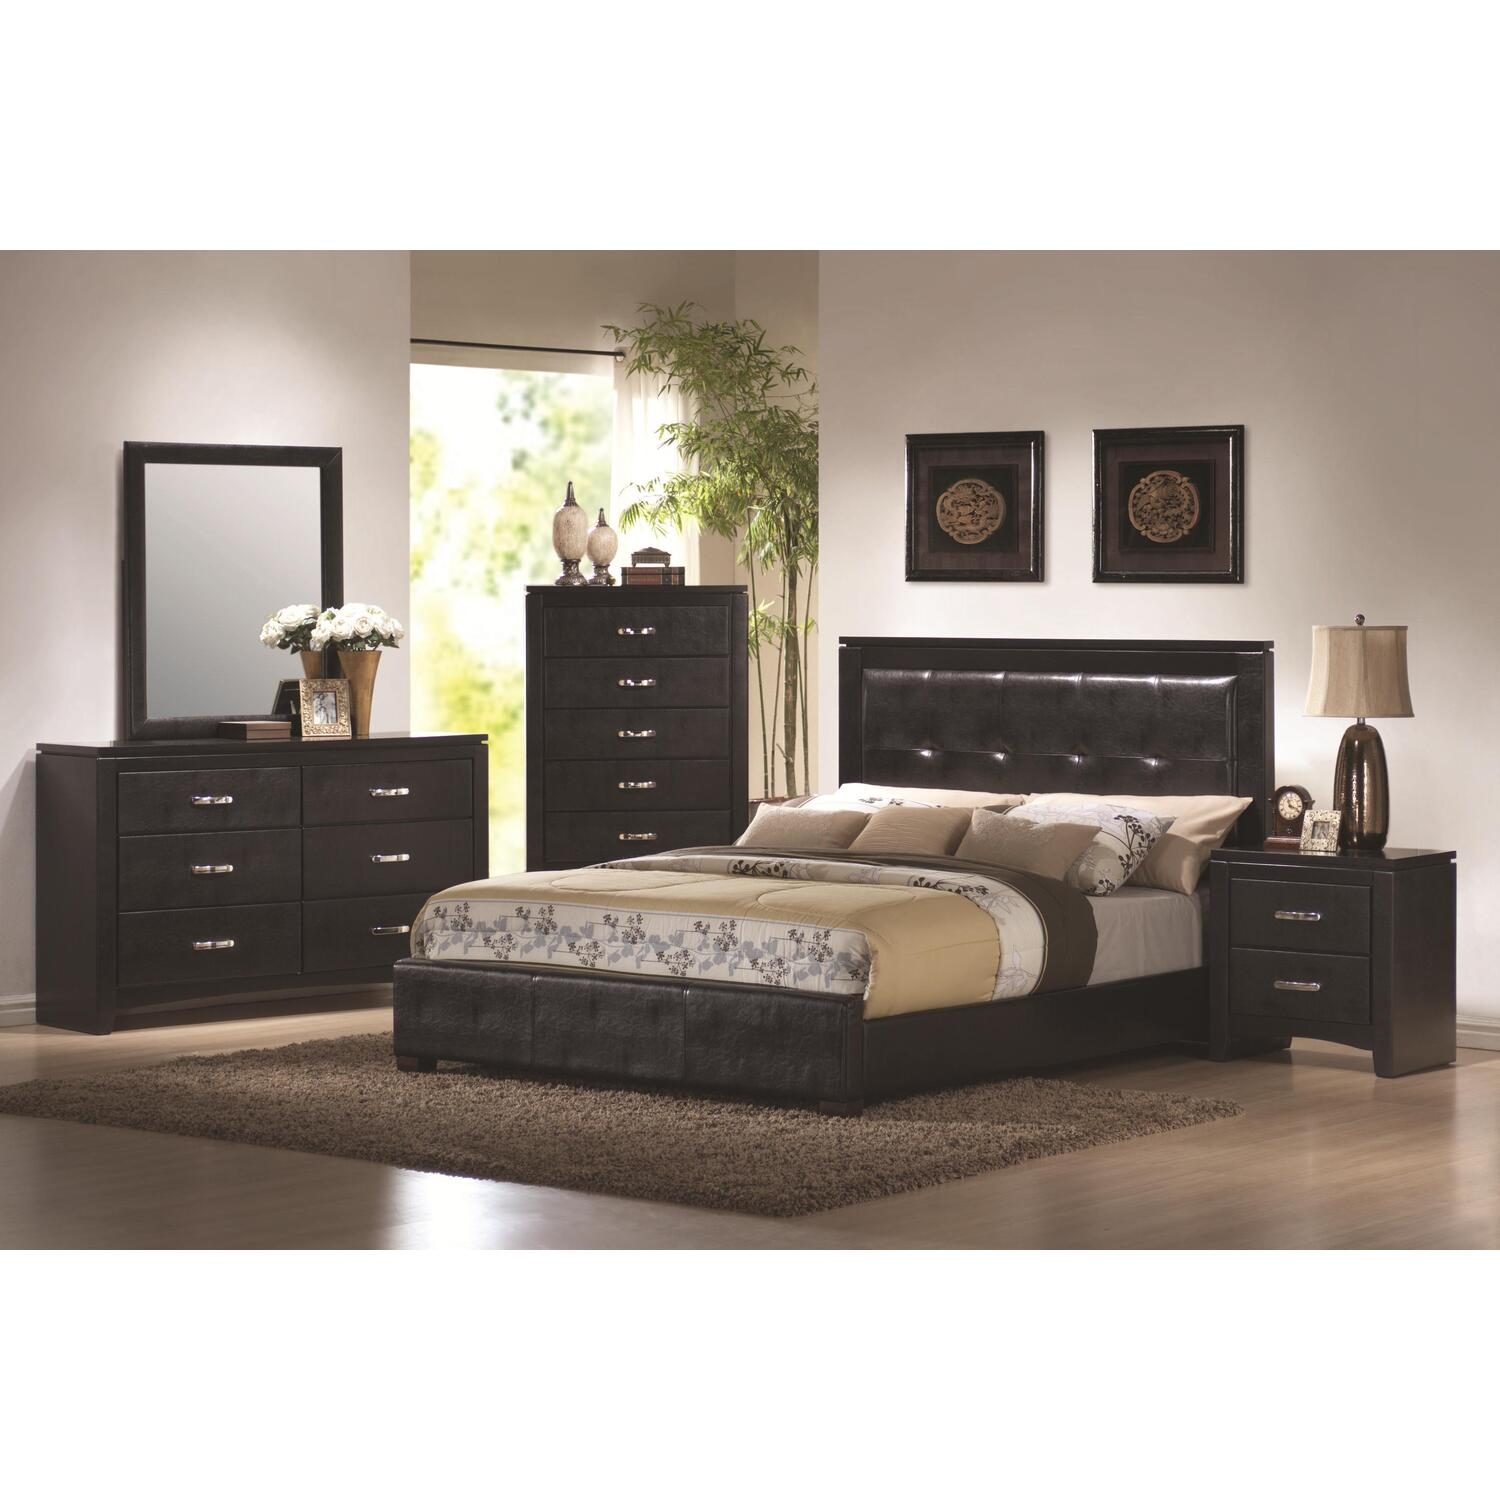 5 Pc Bedroom Set Provides Some Of The Most Interesting Details That You Could Definitely Pay Attention To Your Own Project Can See A Wide Range